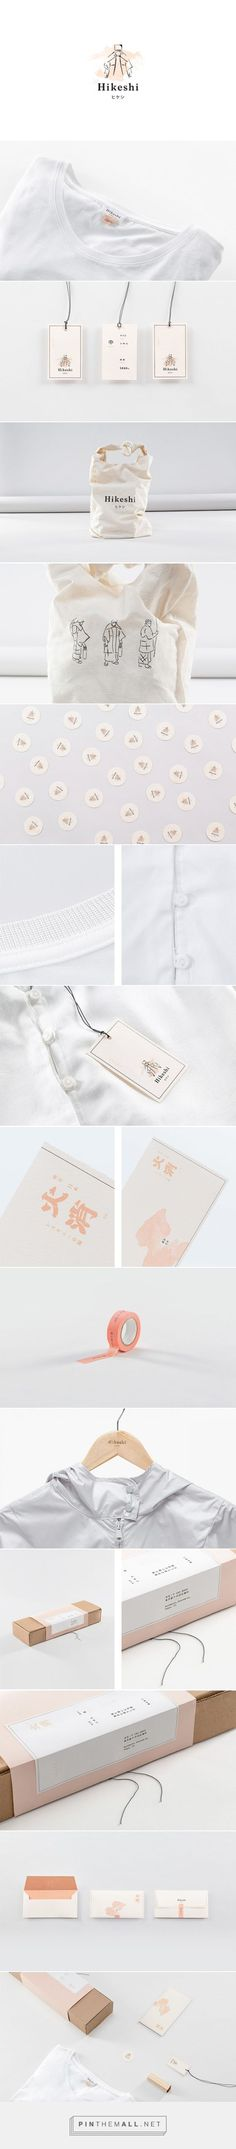 Branding for Hikeshi (a high quality clothing line from Japan): This looks really beautiful and sophisticated. Love the various character illustrations and gorgeous packaging.